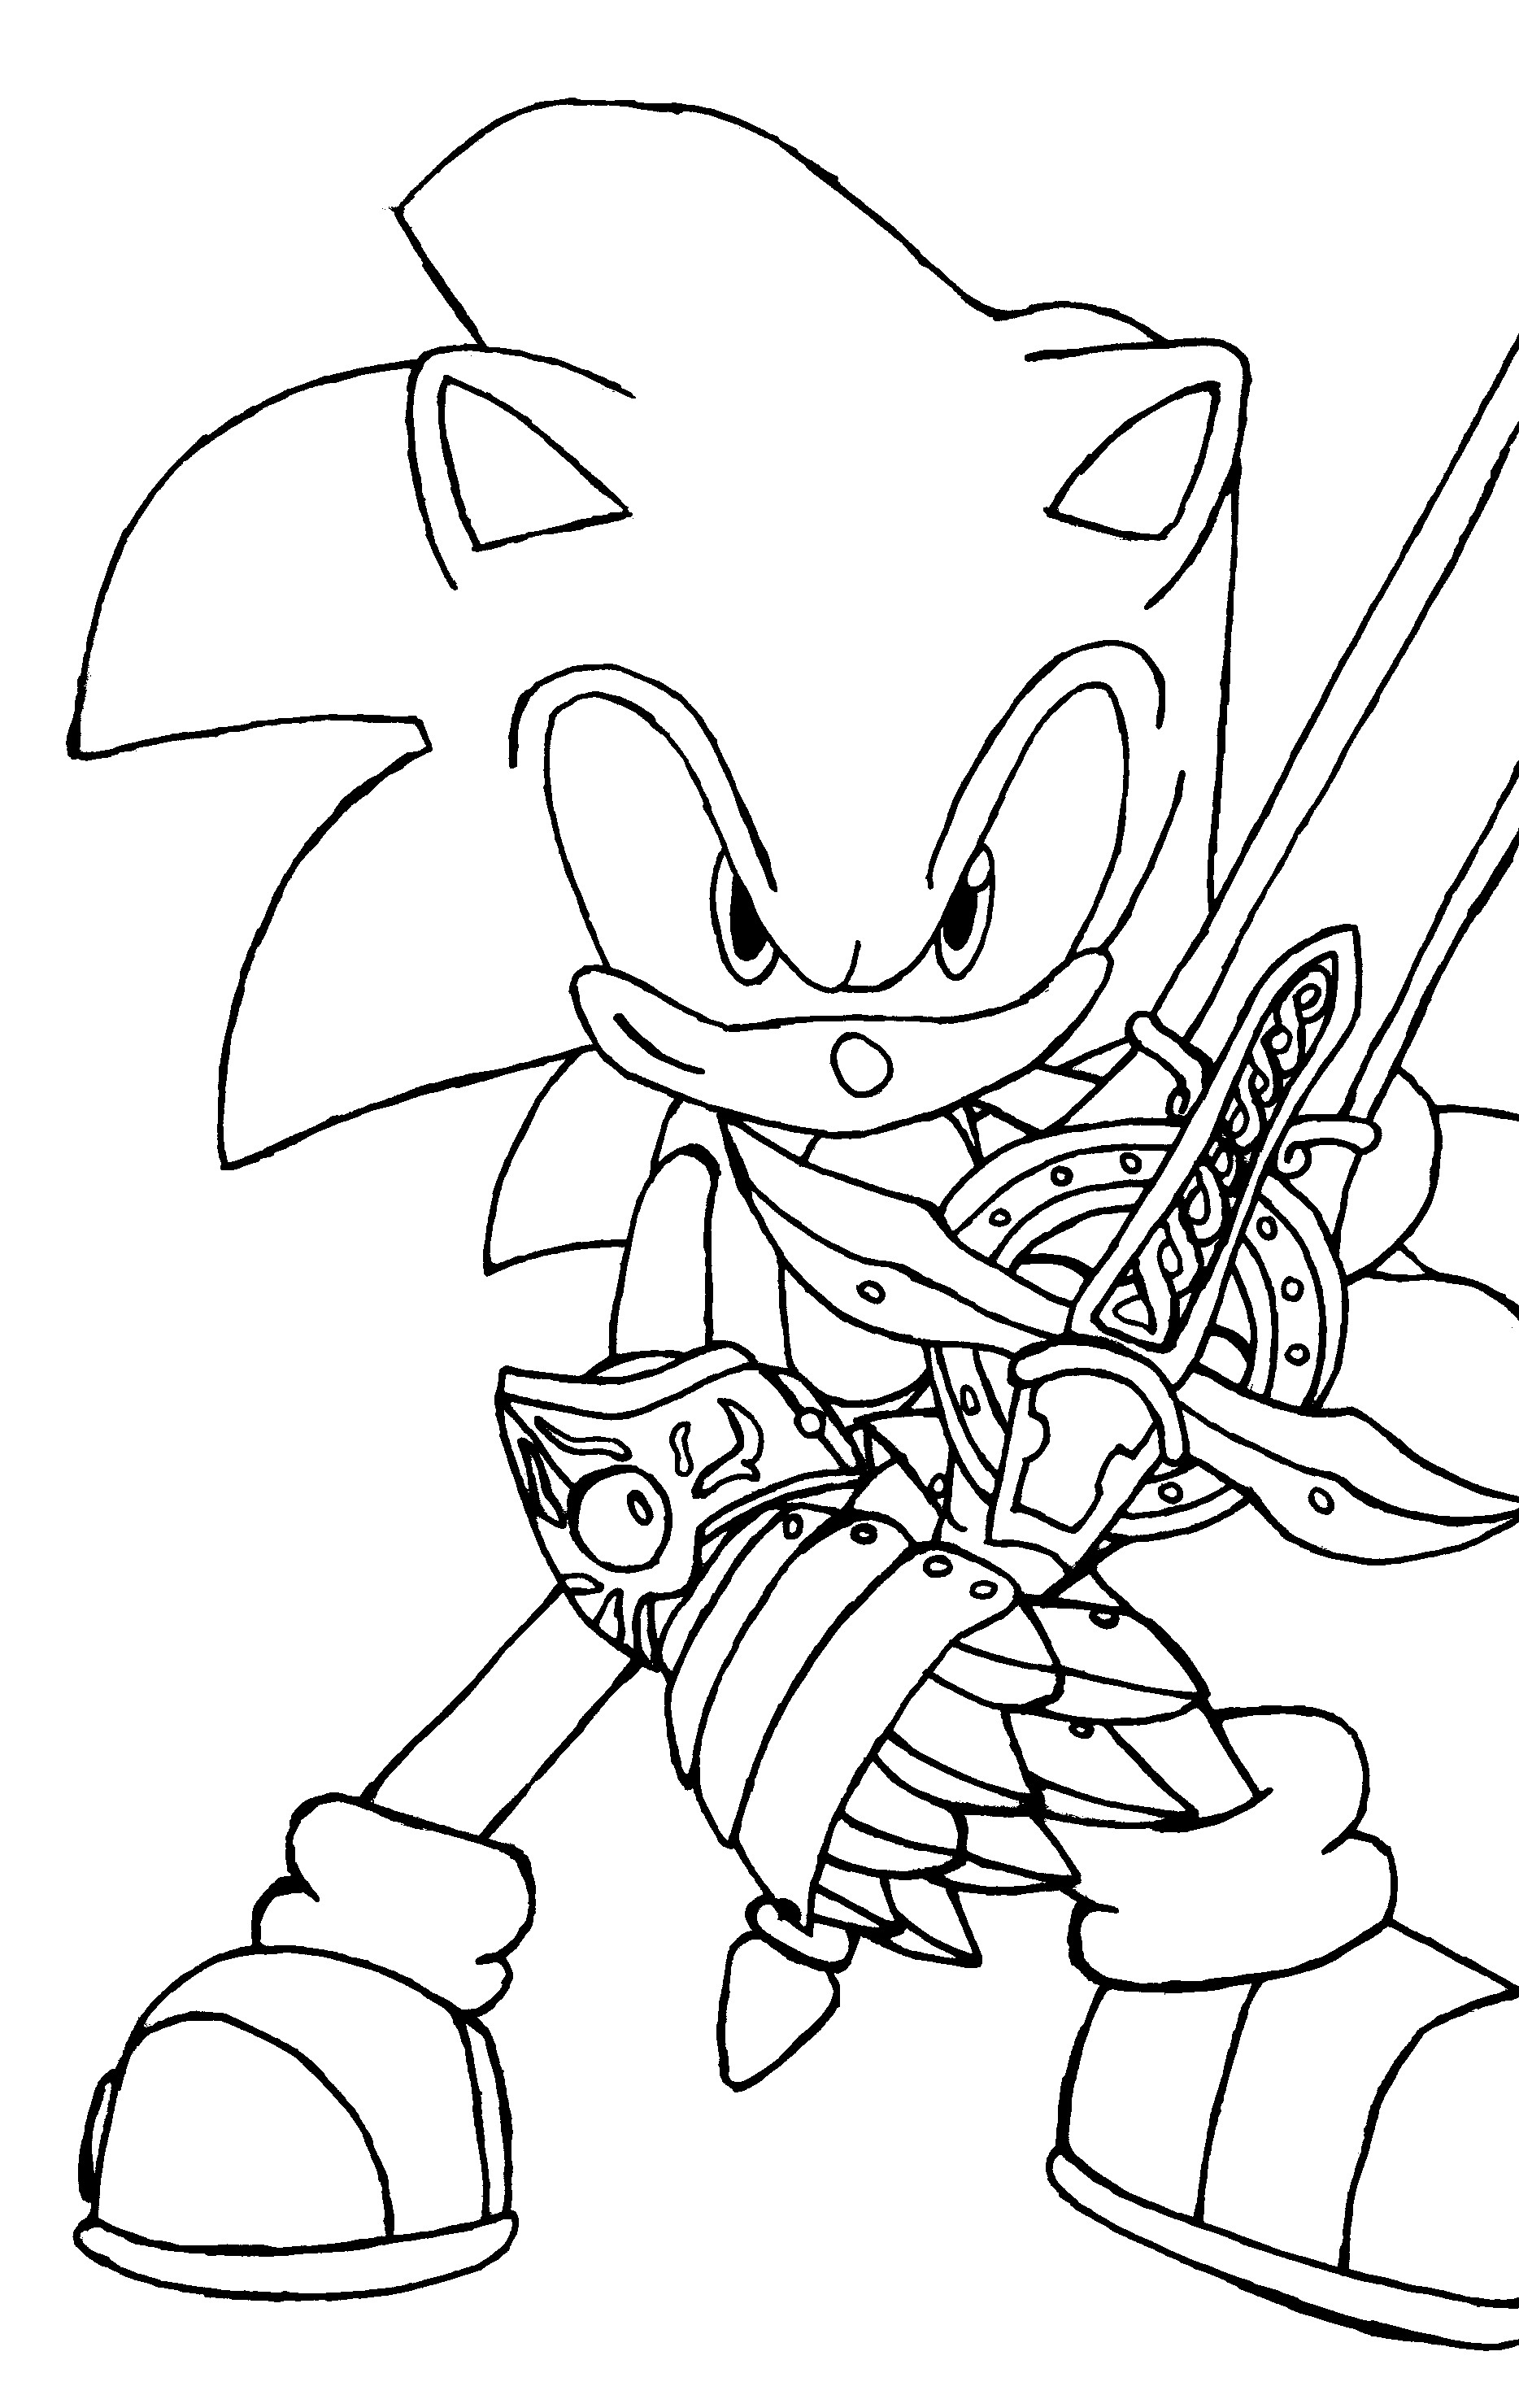 Free printable sonic the hedgehog coloring pages for kids for Coloring pages online